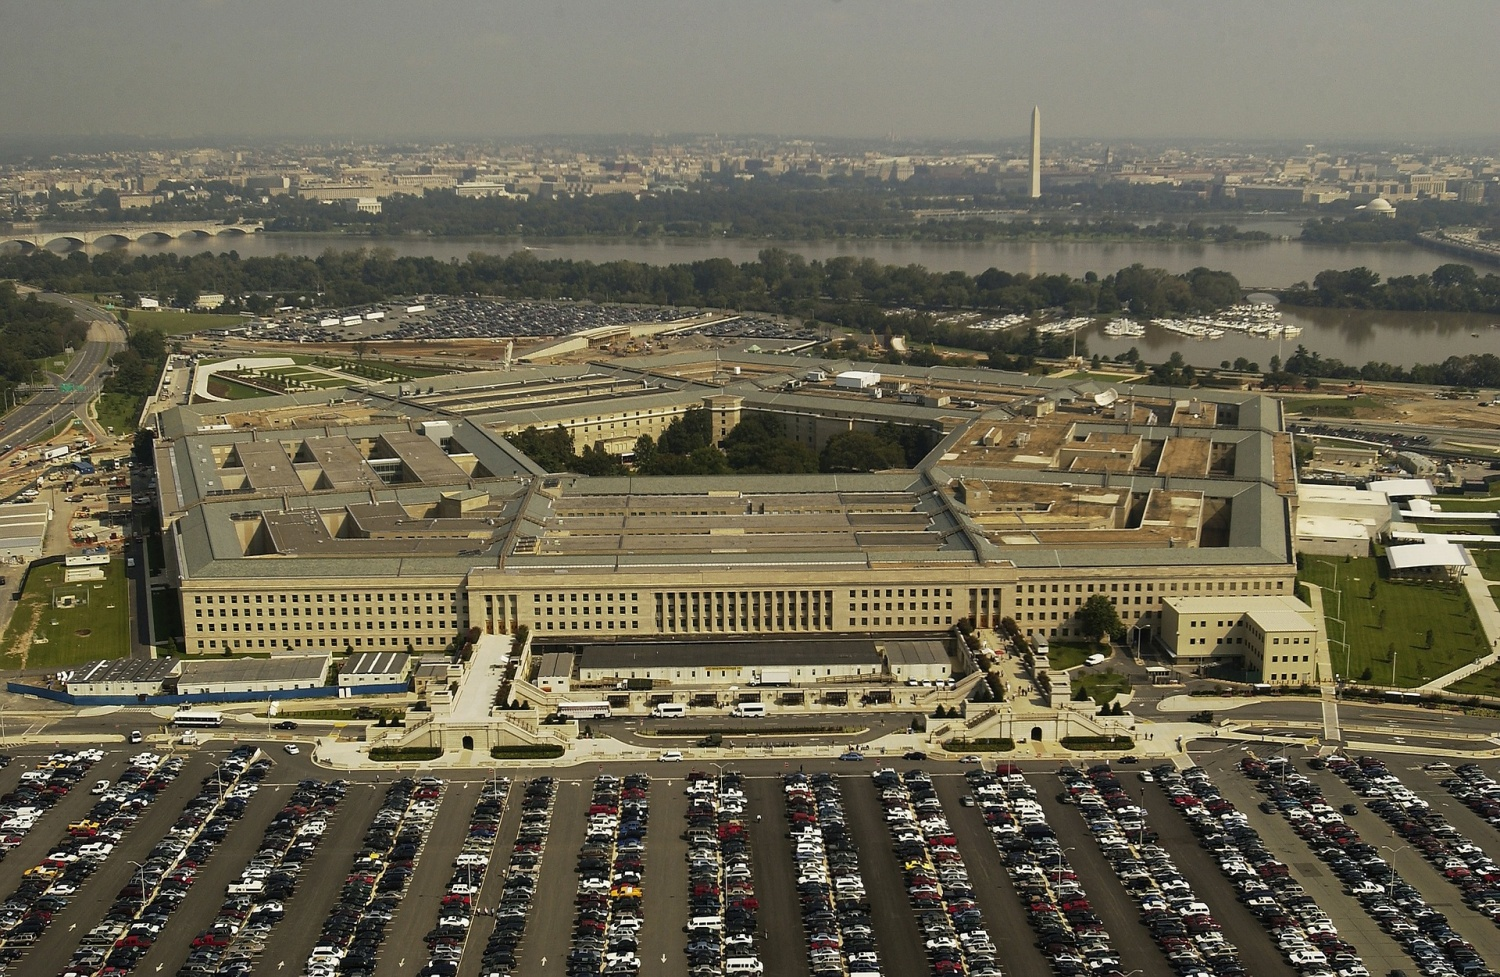 The Pentagon awards a $10-billion deal with Microsoft, which comes as a surprise to Amazon